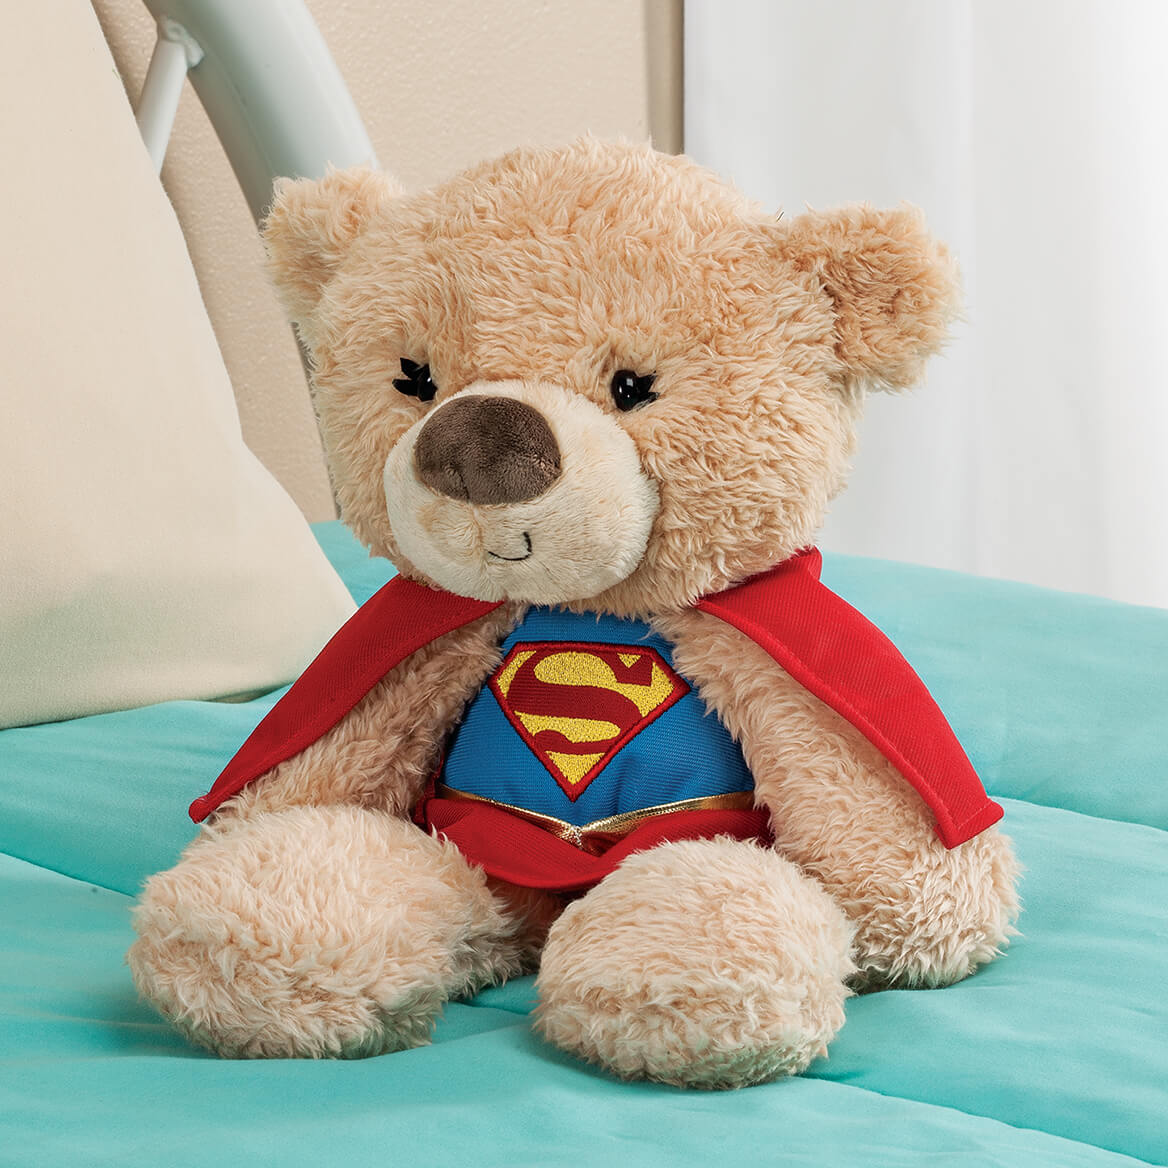 3ba42c3afe3a1 Personalized Supergirl Teddy Bear-365392 Personalized Supergirl Teddy Bear -365392